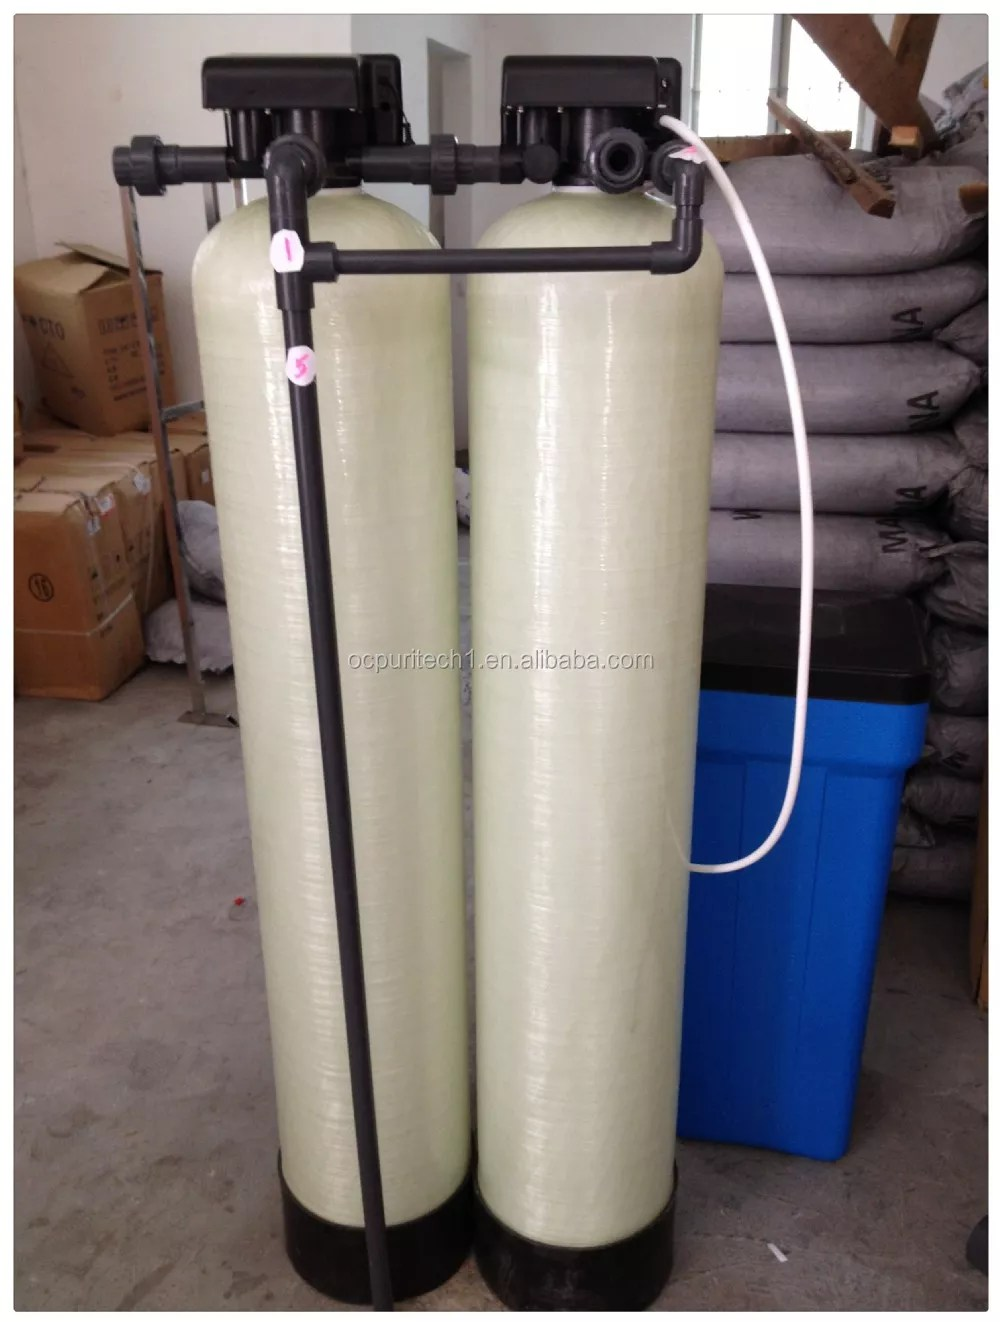 Water Softener Price Low Price Hard Water Water Treatment Plant For Boiler Water Softener View Water Softening Plant For Boiler Ocpuritech Product Details From Guangzhou